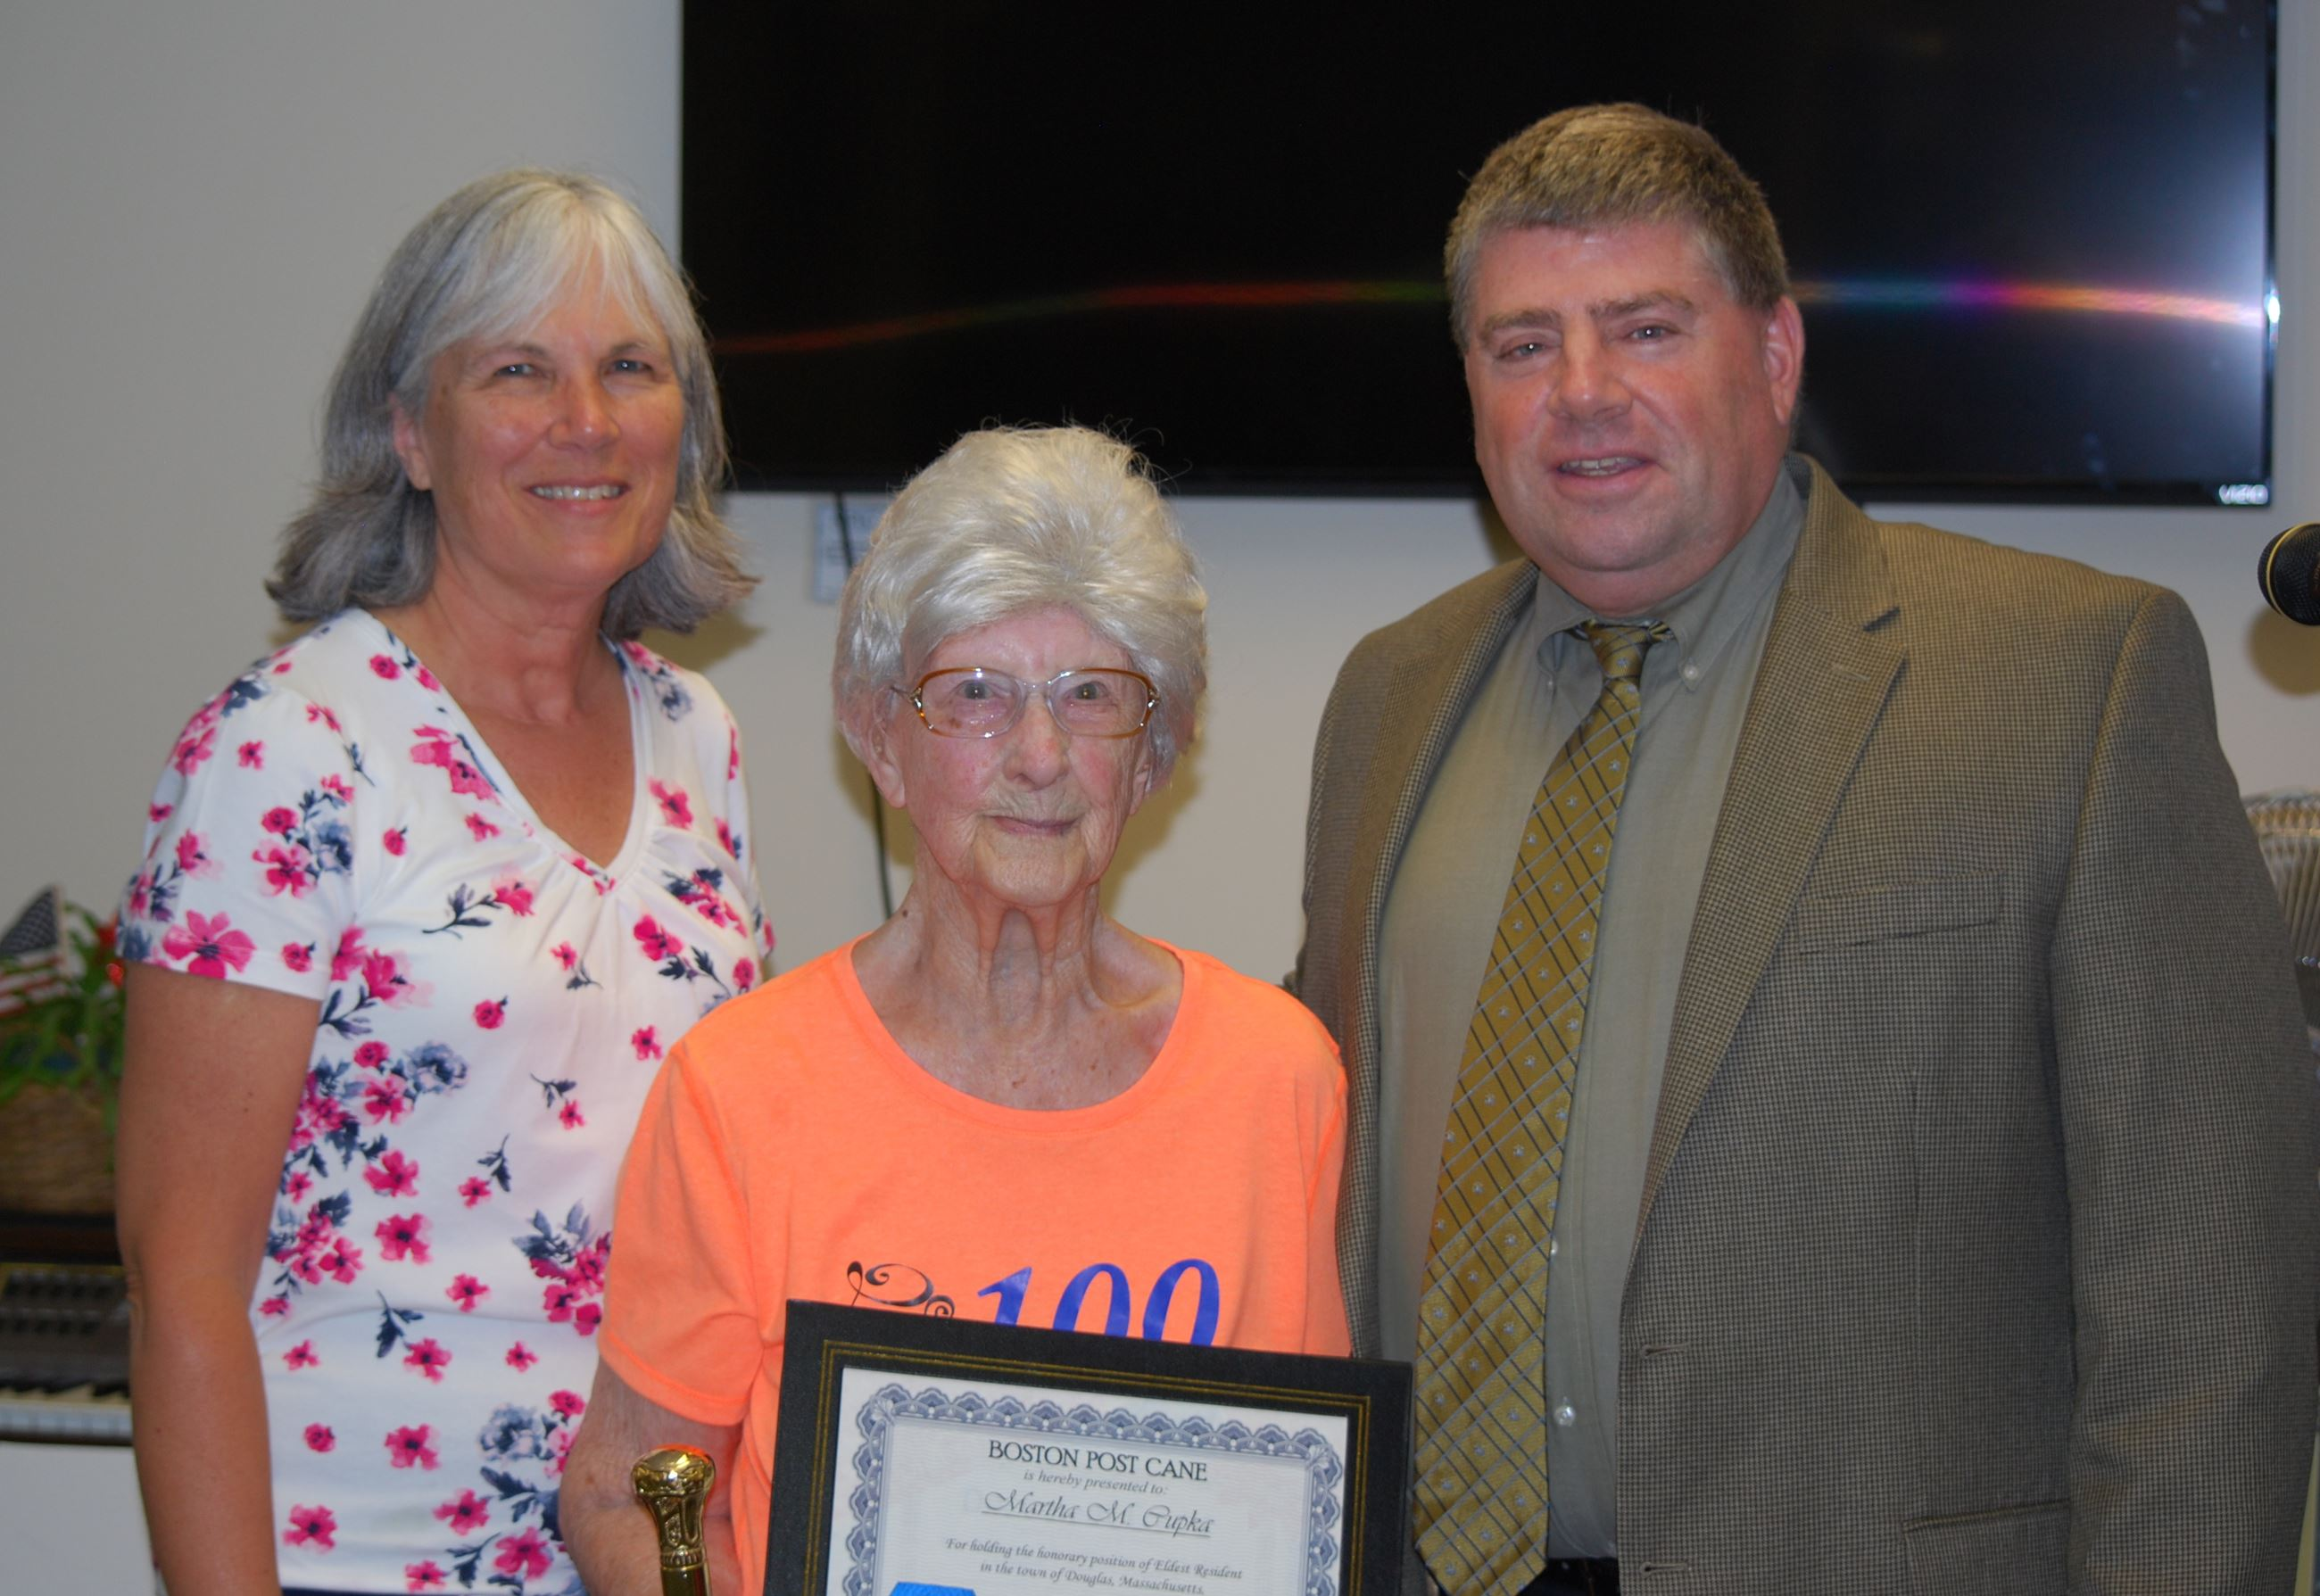 Selectman Cortese, and Suzanne Kane, present Boston Post Cane certificate to Martha Chupka